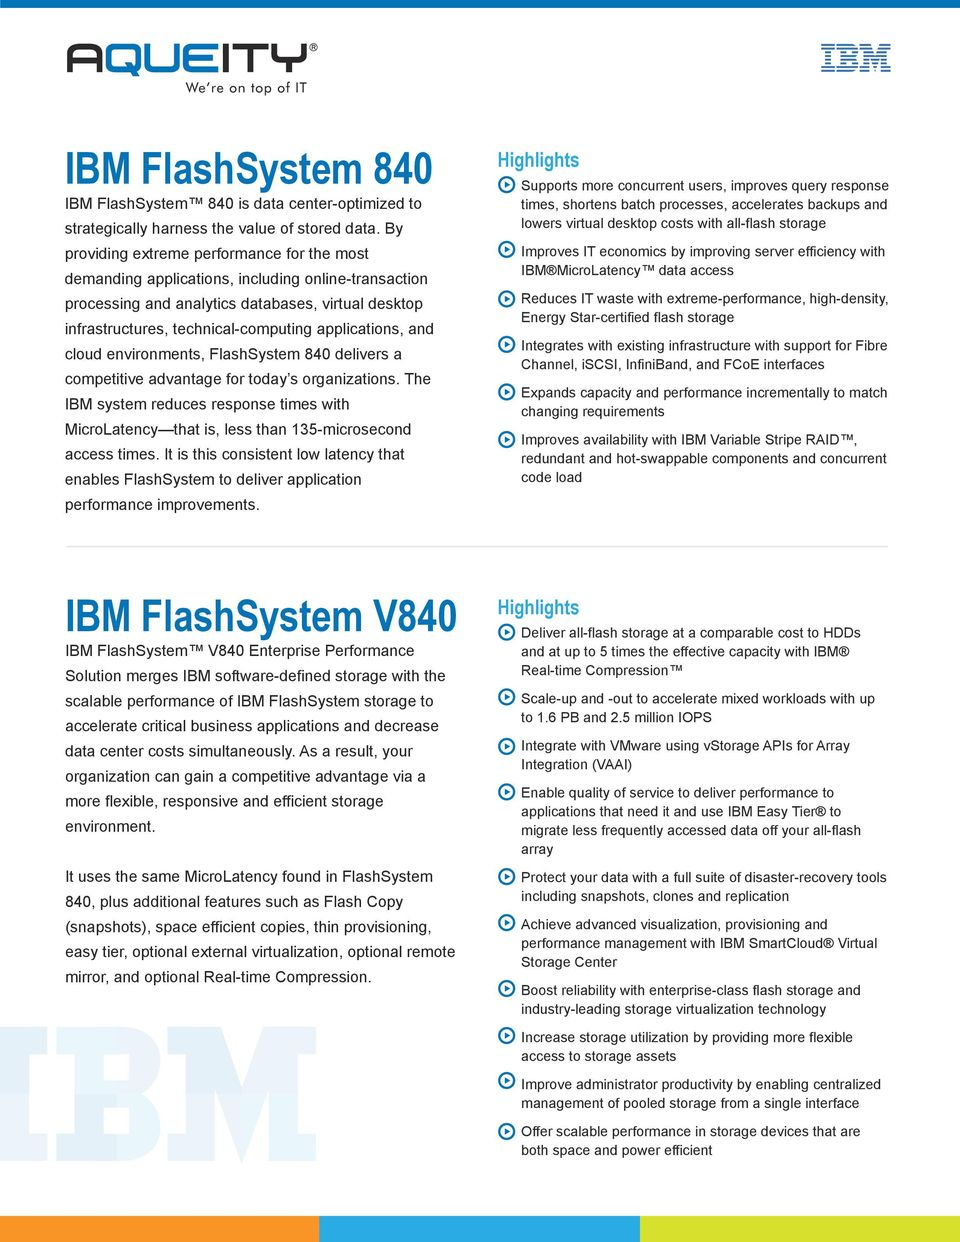 applications, and cloud environments, FlashSystem 840 delivers a competitive advantage for today s organizations.